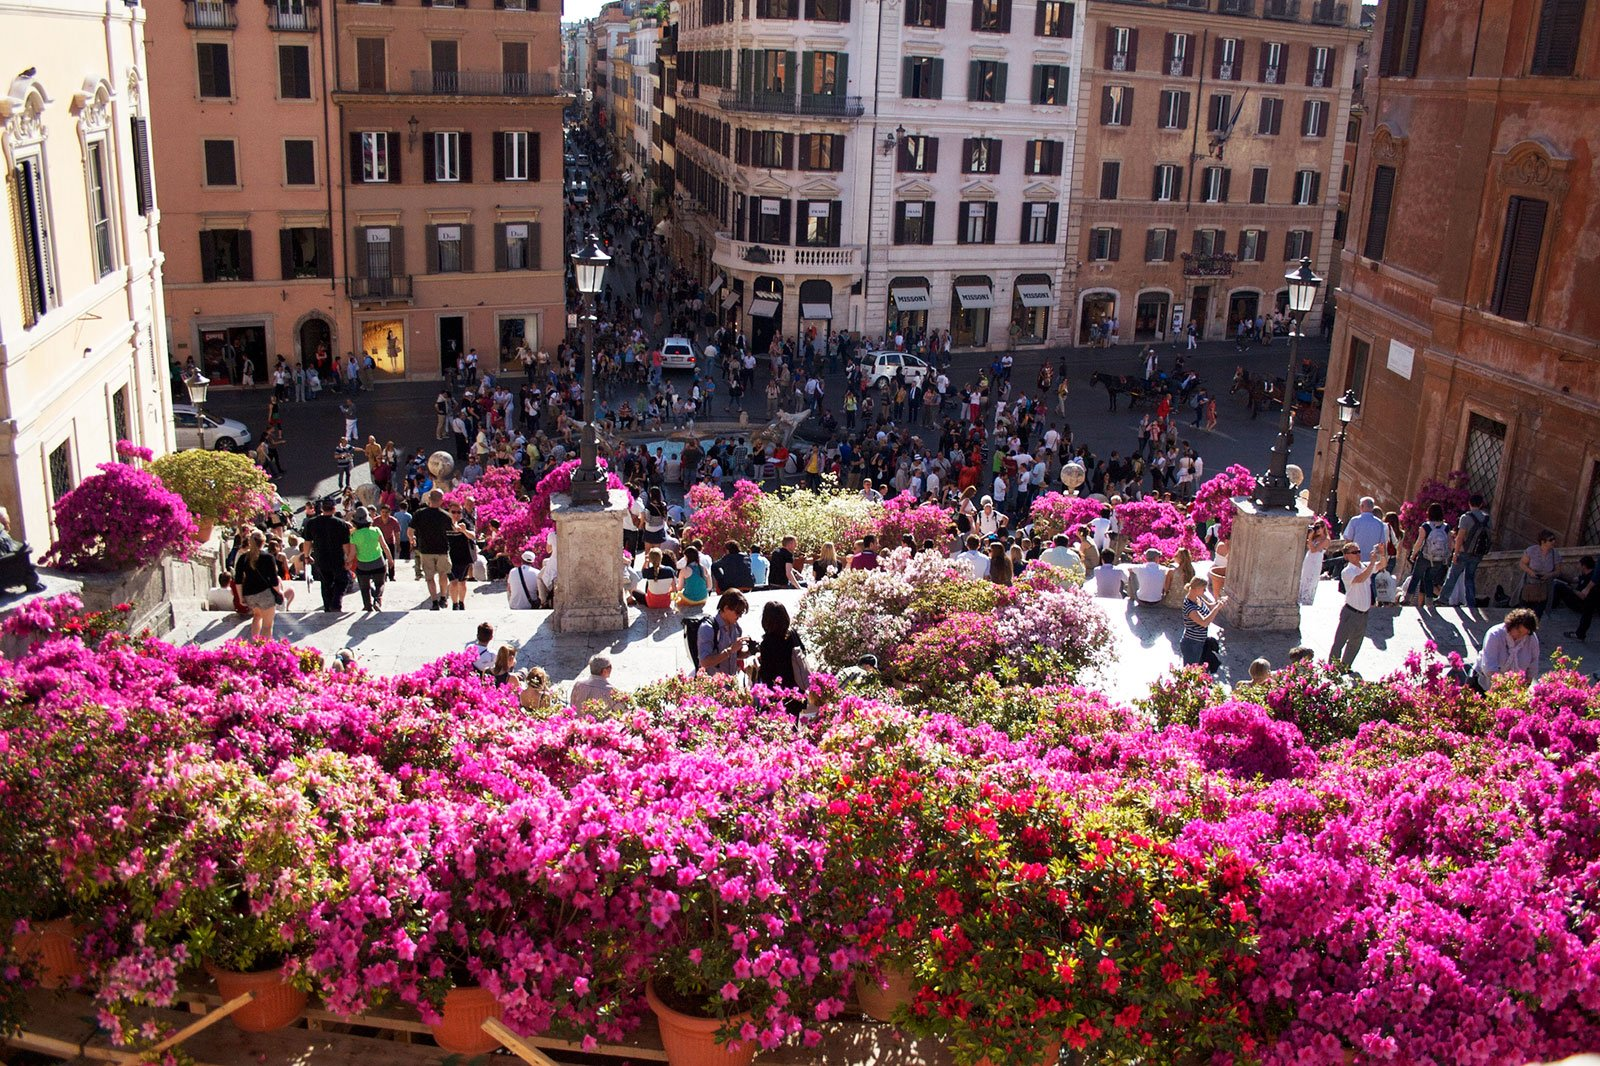 How to see the Festa della Primavera in Rome